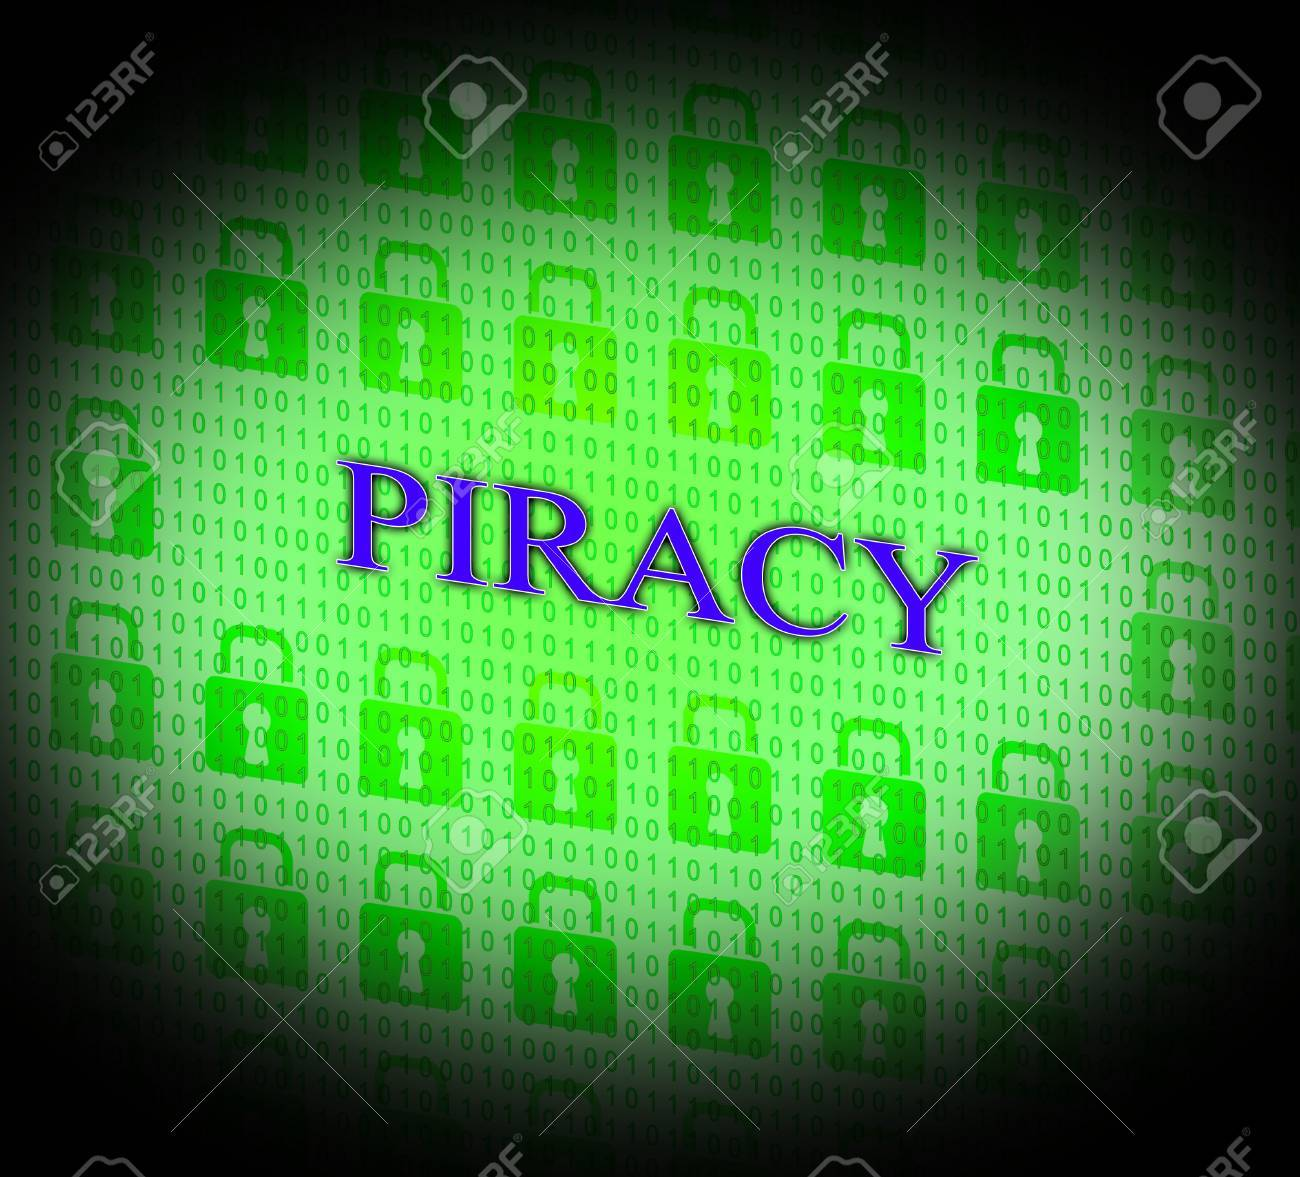 Copyright Piracy Meaning License Protected And Ownership Stock Photo